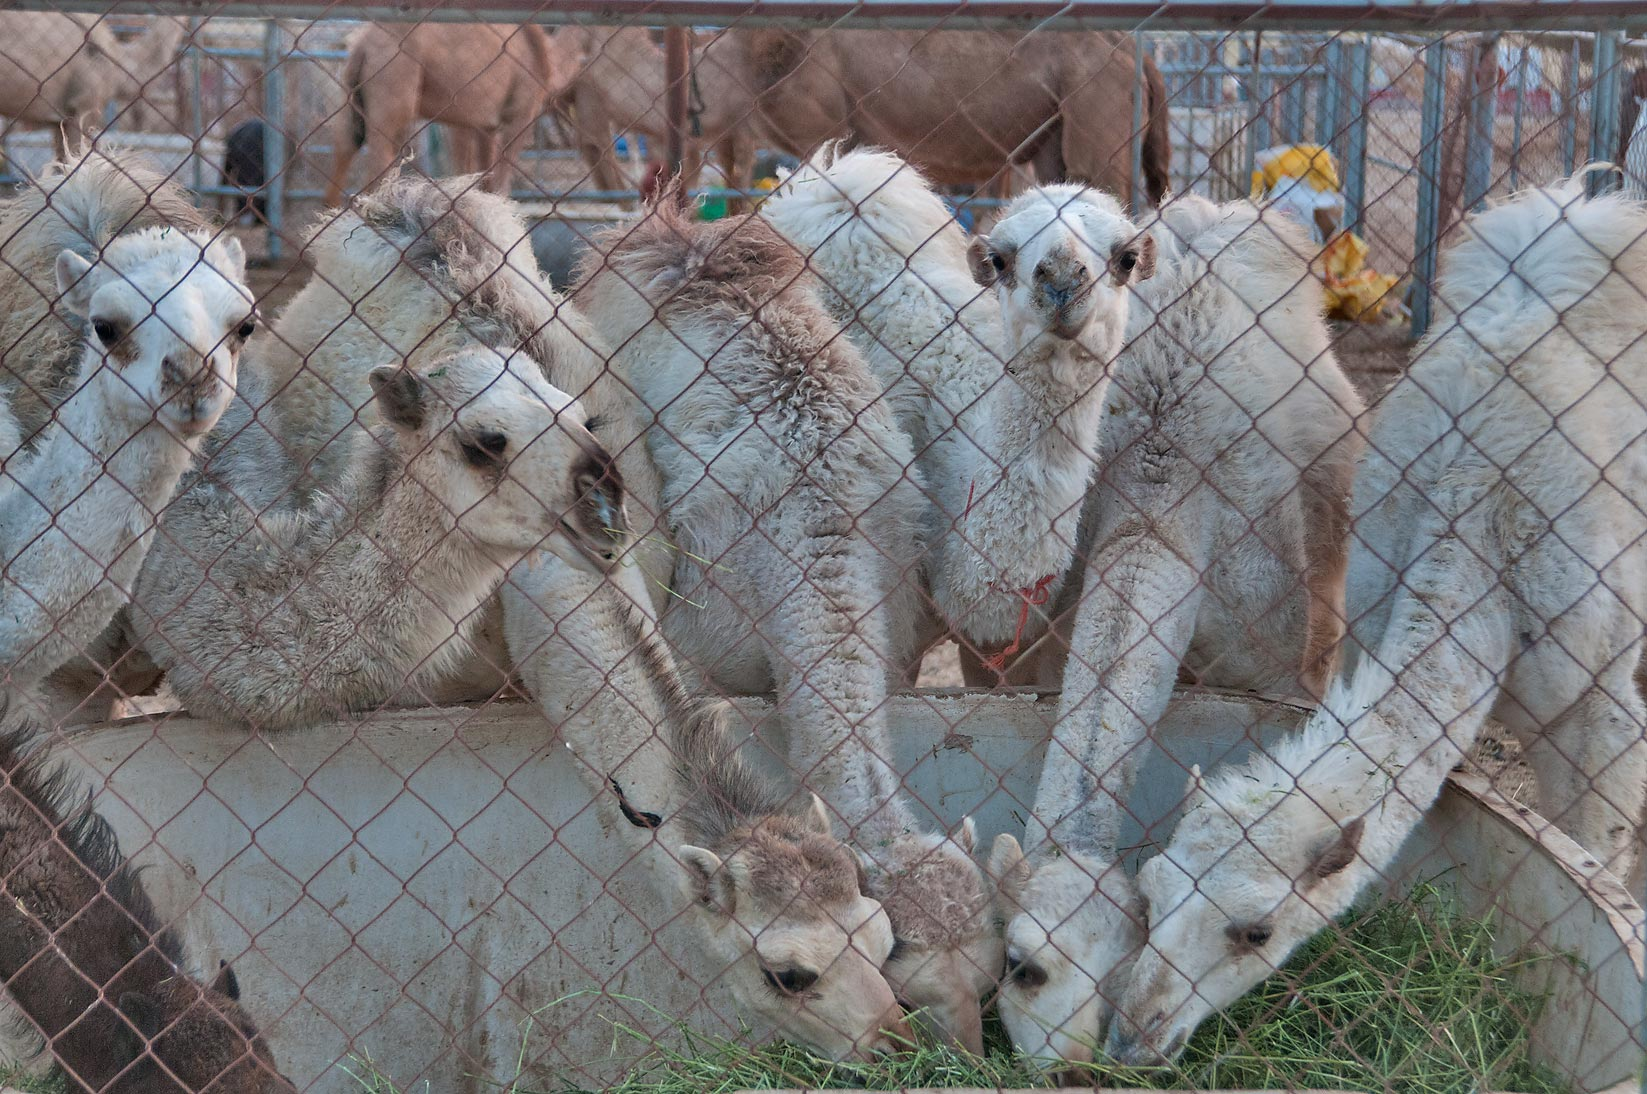 Young white camels eating fodder in Camel Market (Souq). Doha, Qatar